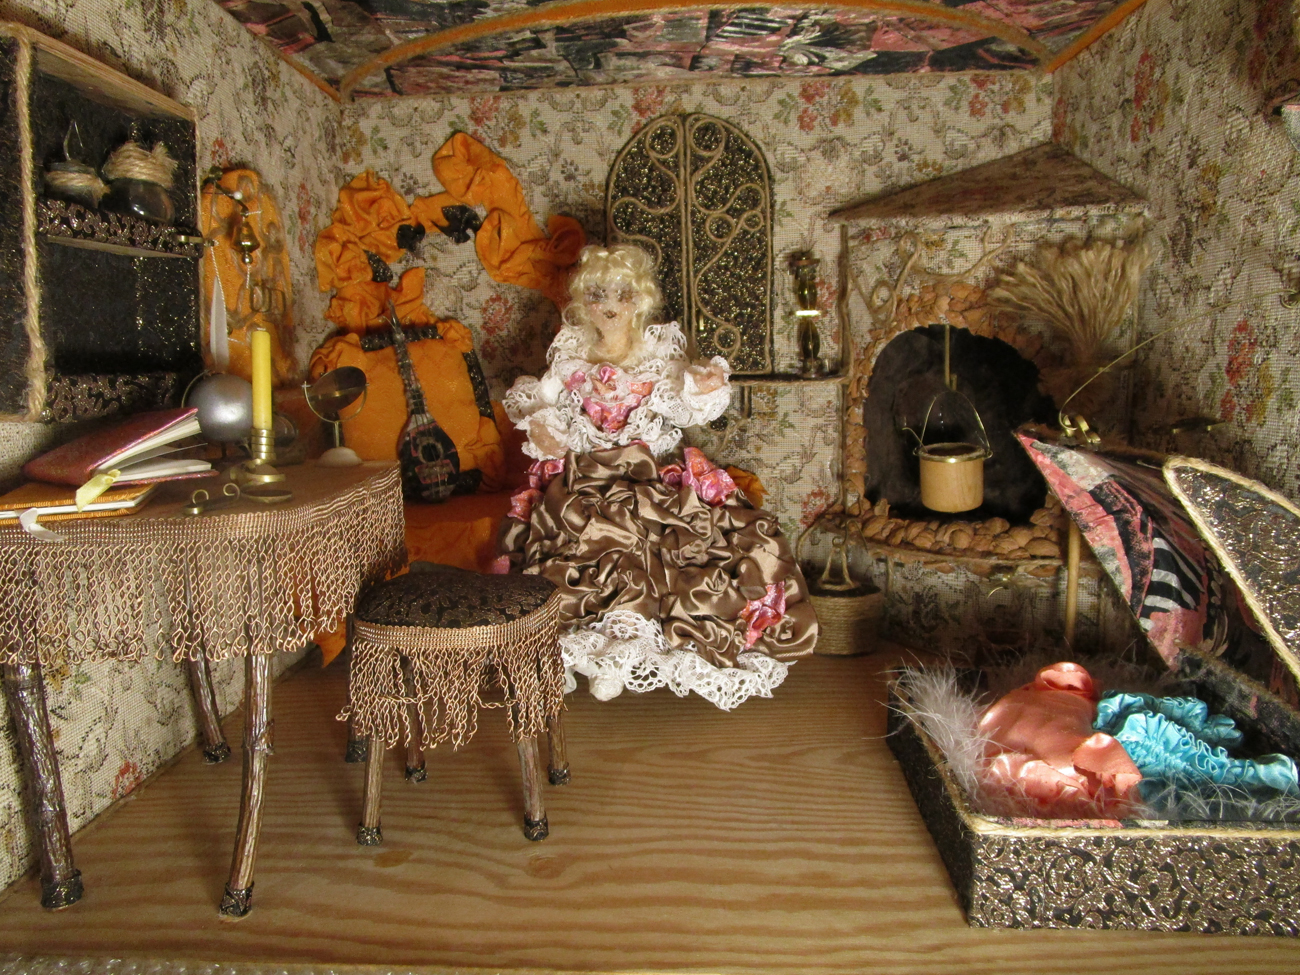 The Doll and her House, 1995, Anna Maria Karolak. Photo 41. Doll`s House - Doll House - Artistic Toy.